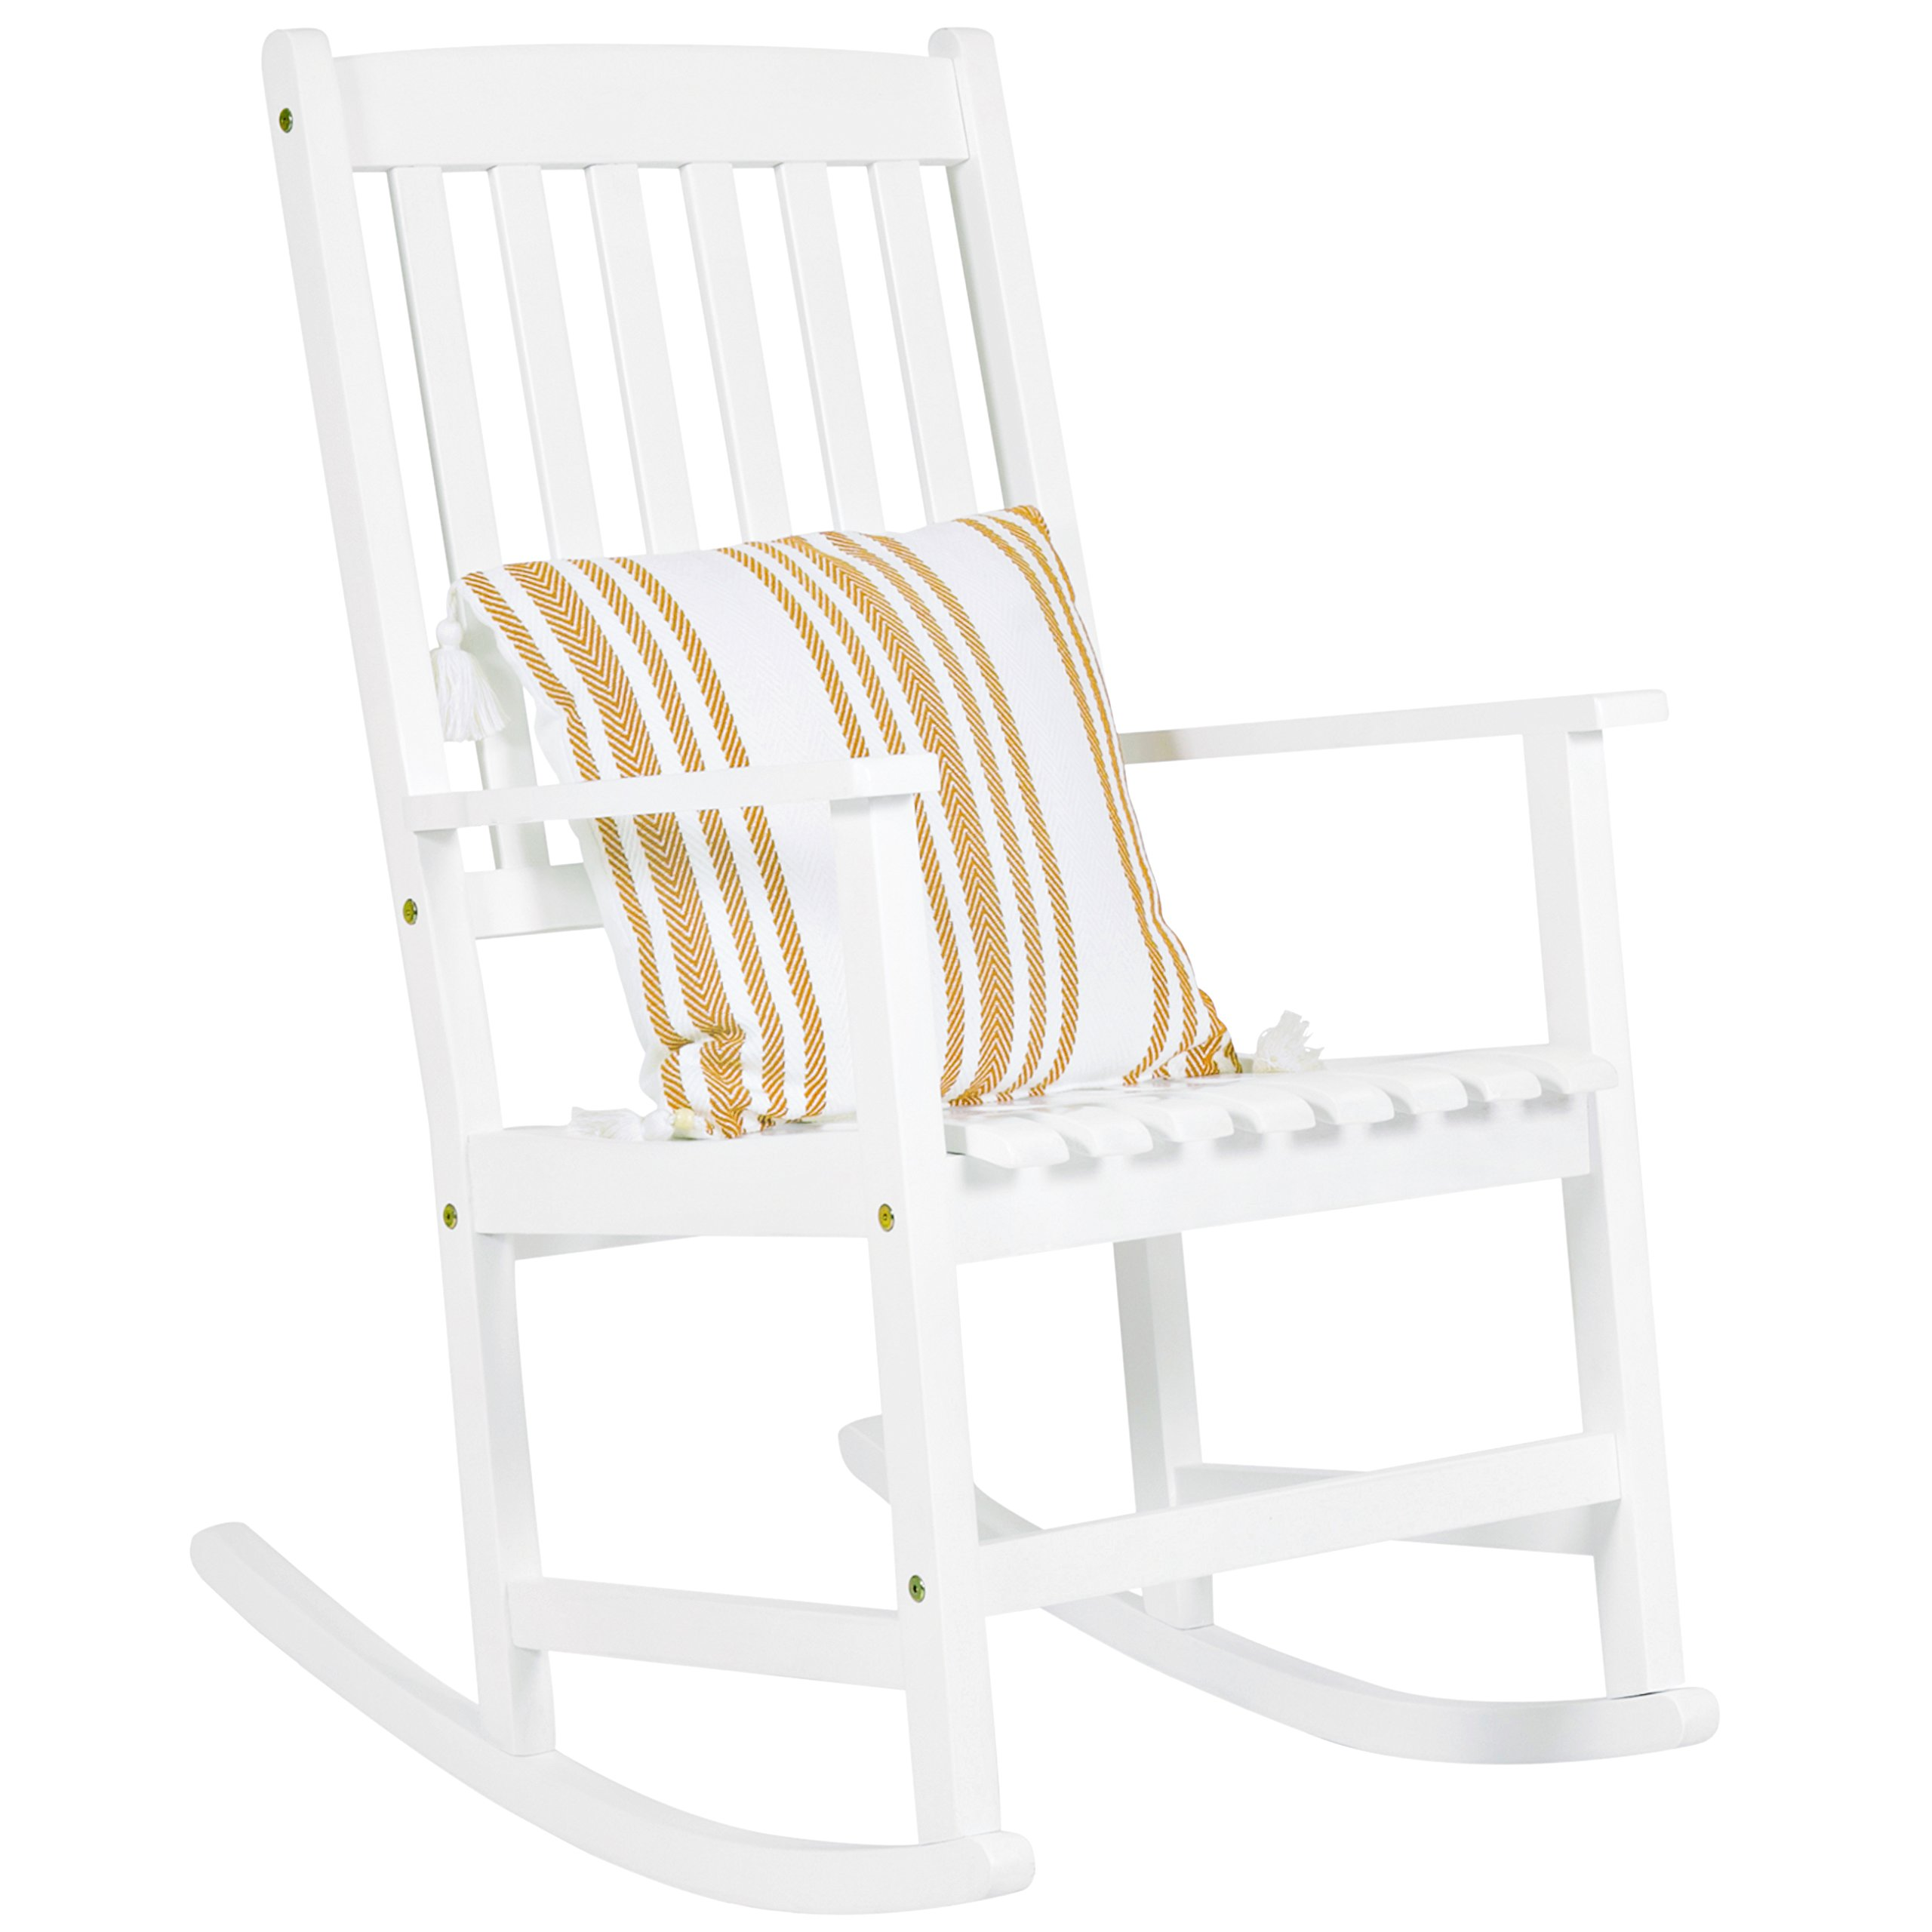 Best Choice Products Indoor Outdoor Traditional Wooden Rocking Chair Furniture with Slatted Seat and Backrest, White by Best Choice Products